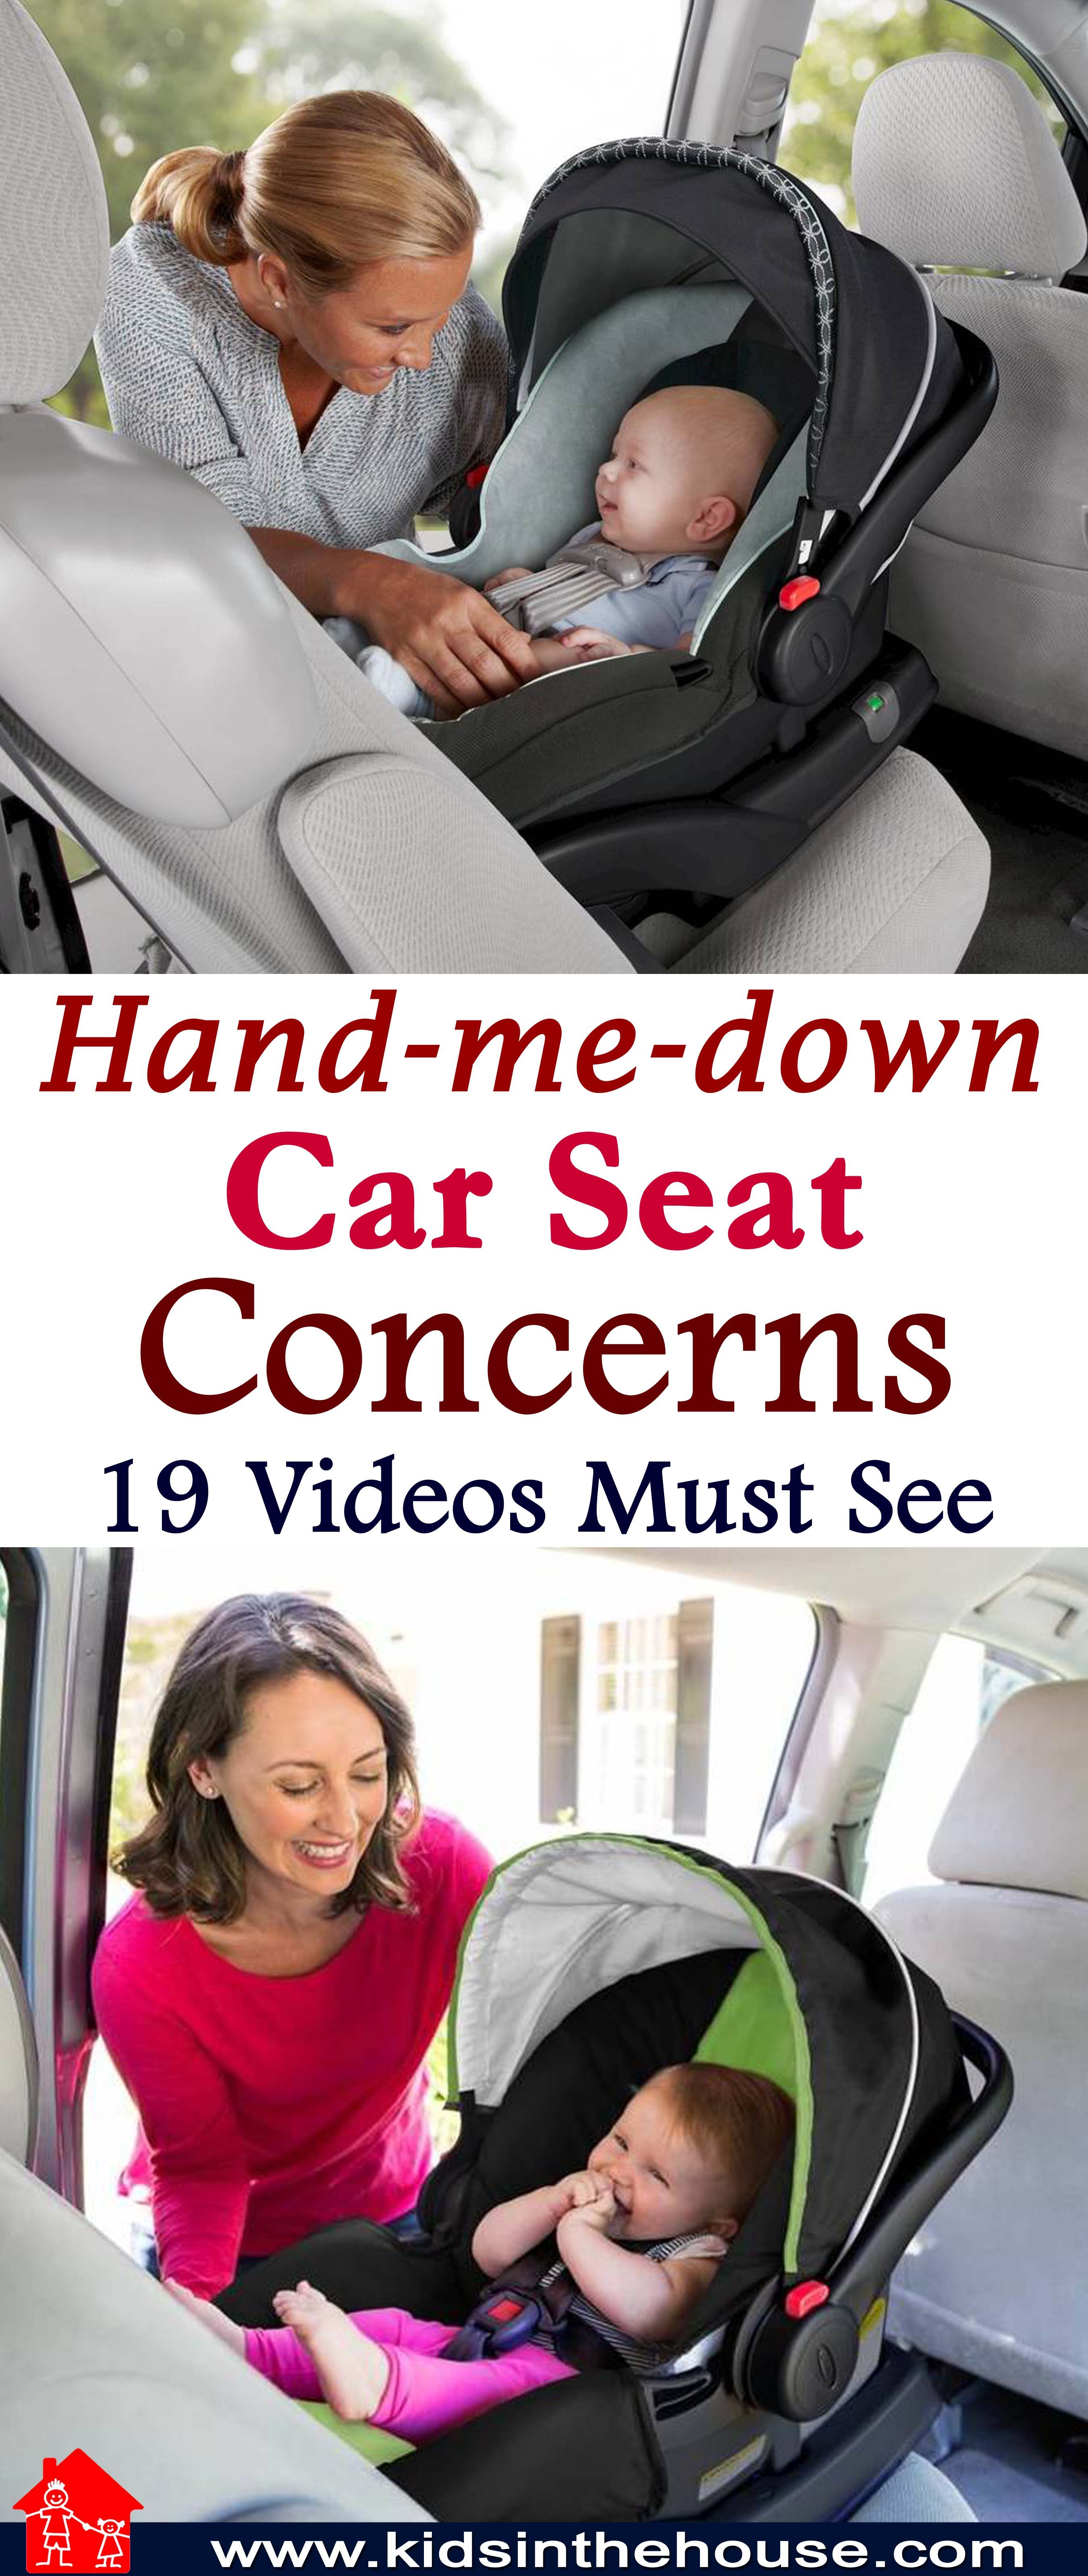 Handmedown car seats are safe to use if you, number one